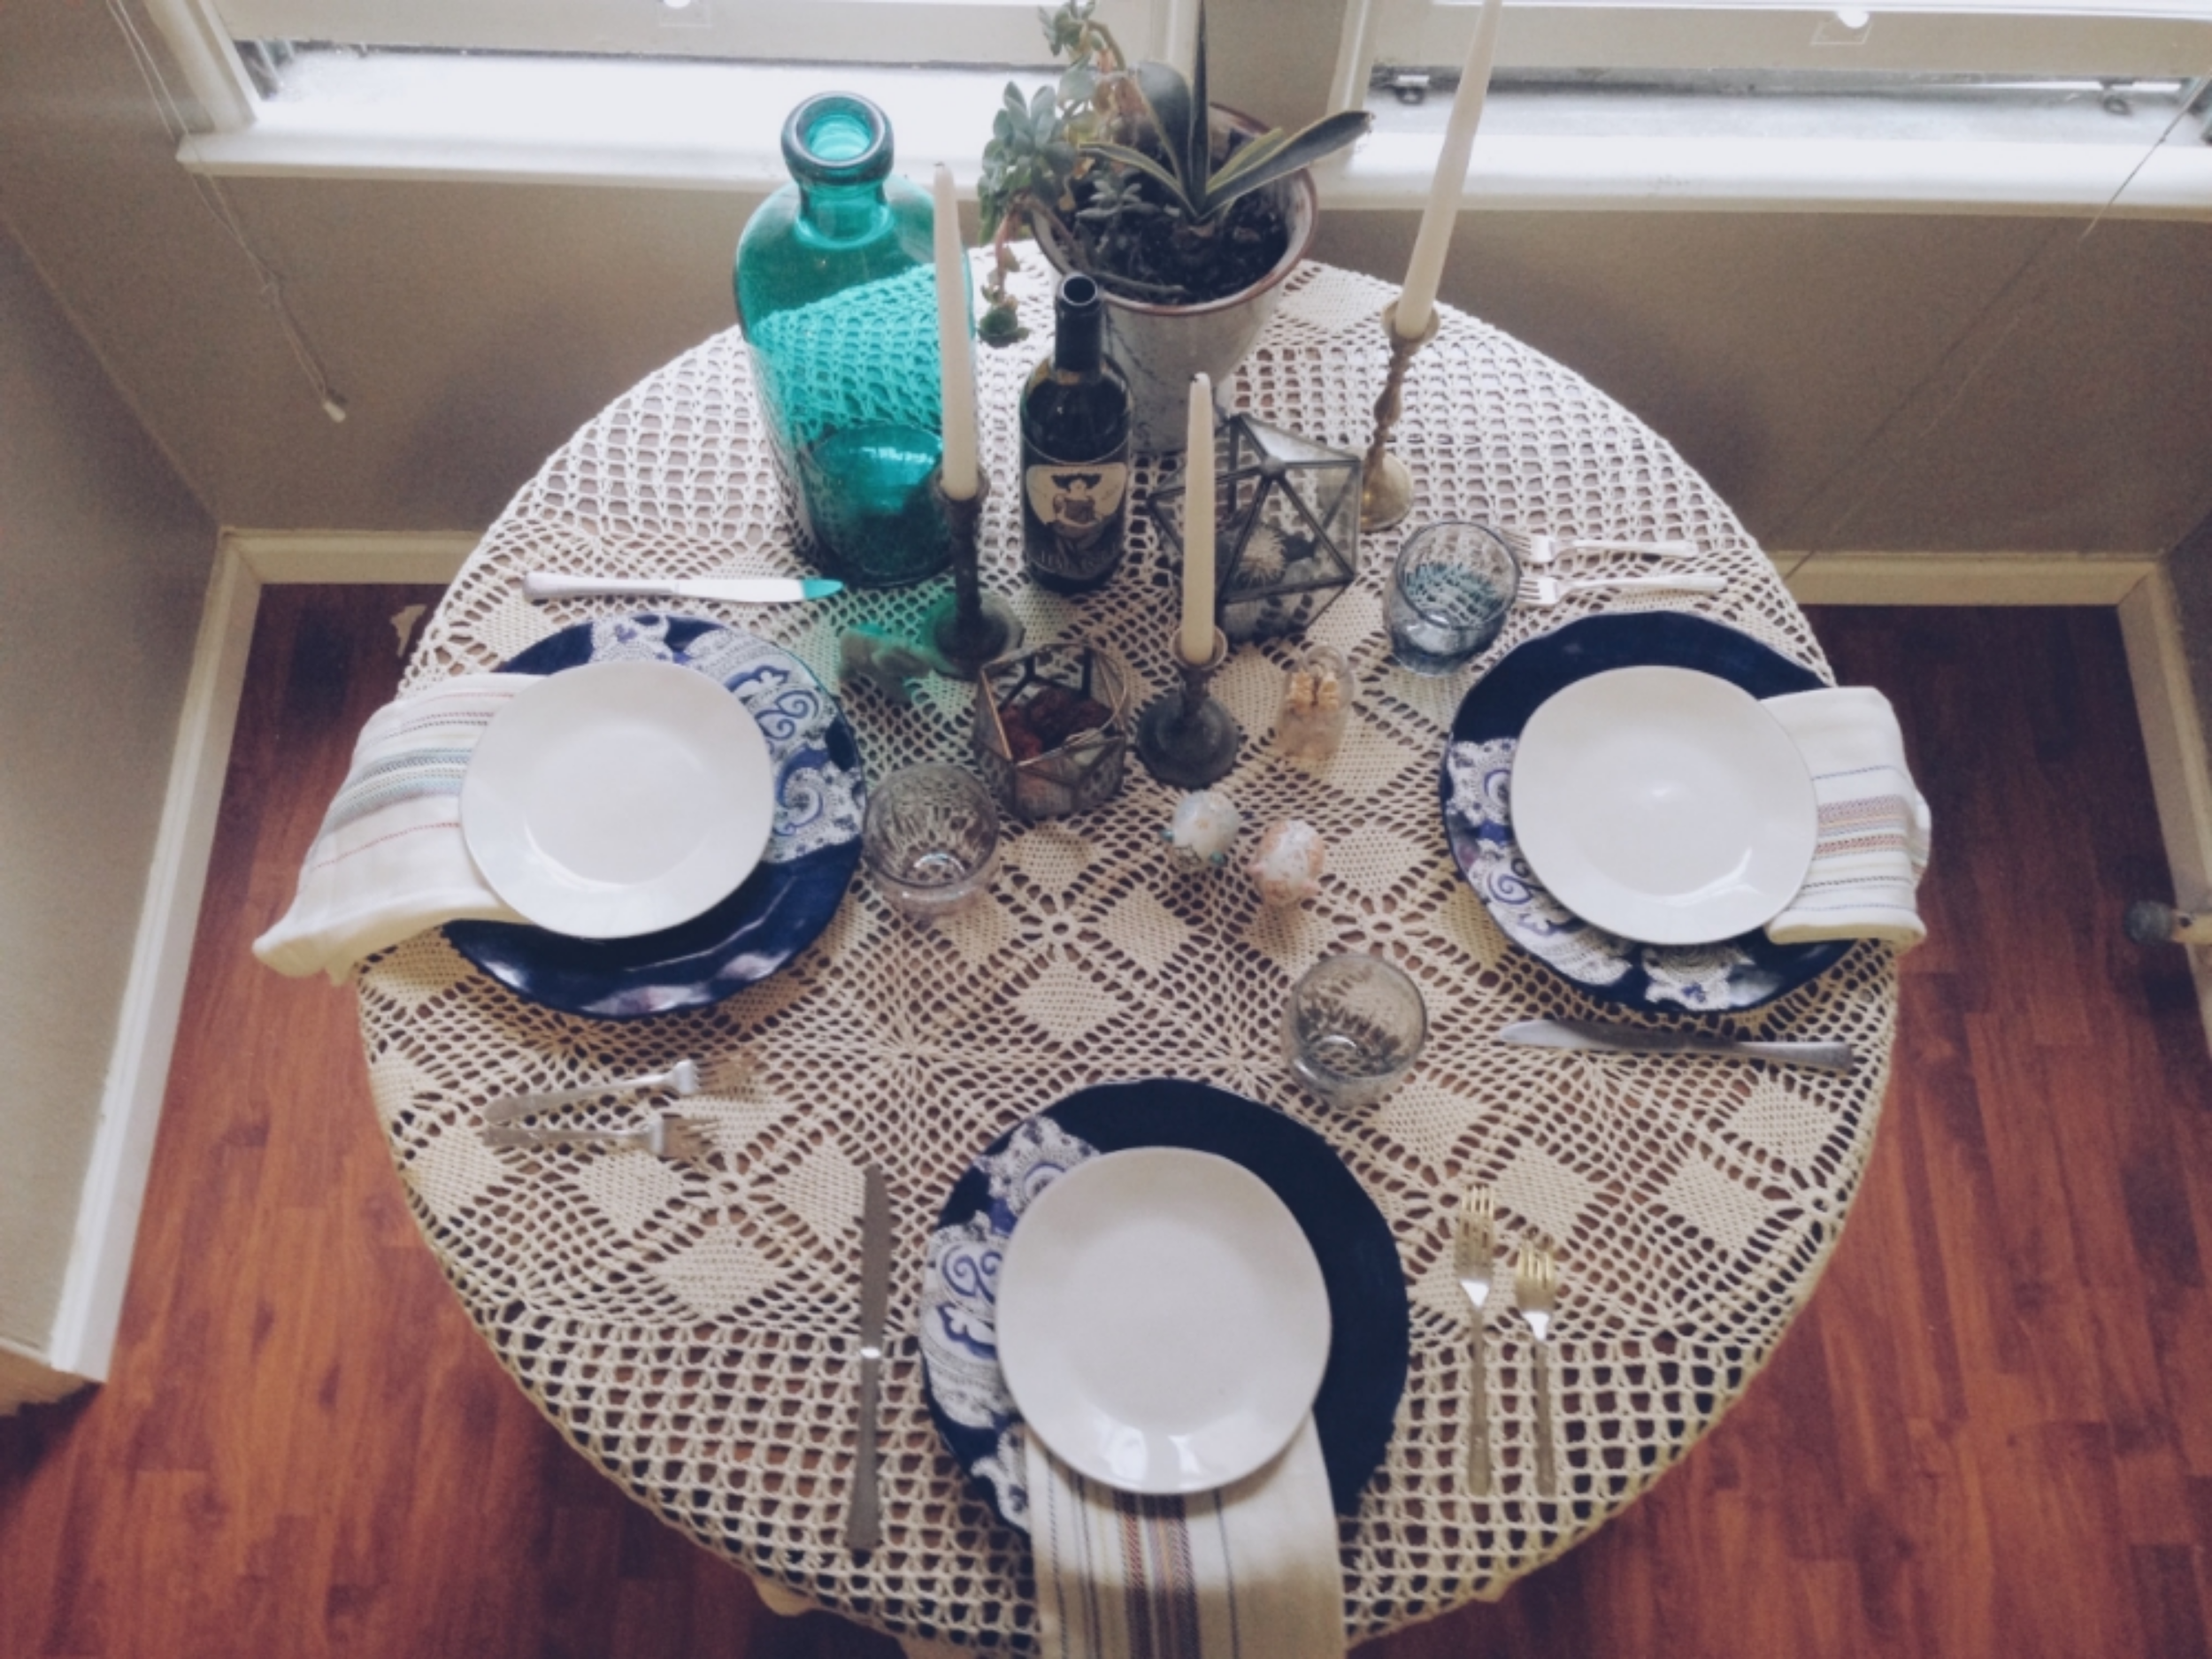 Tip: Use varying heights such as candlesticks, terrariums, and wine bottles to add depth and interest on the table